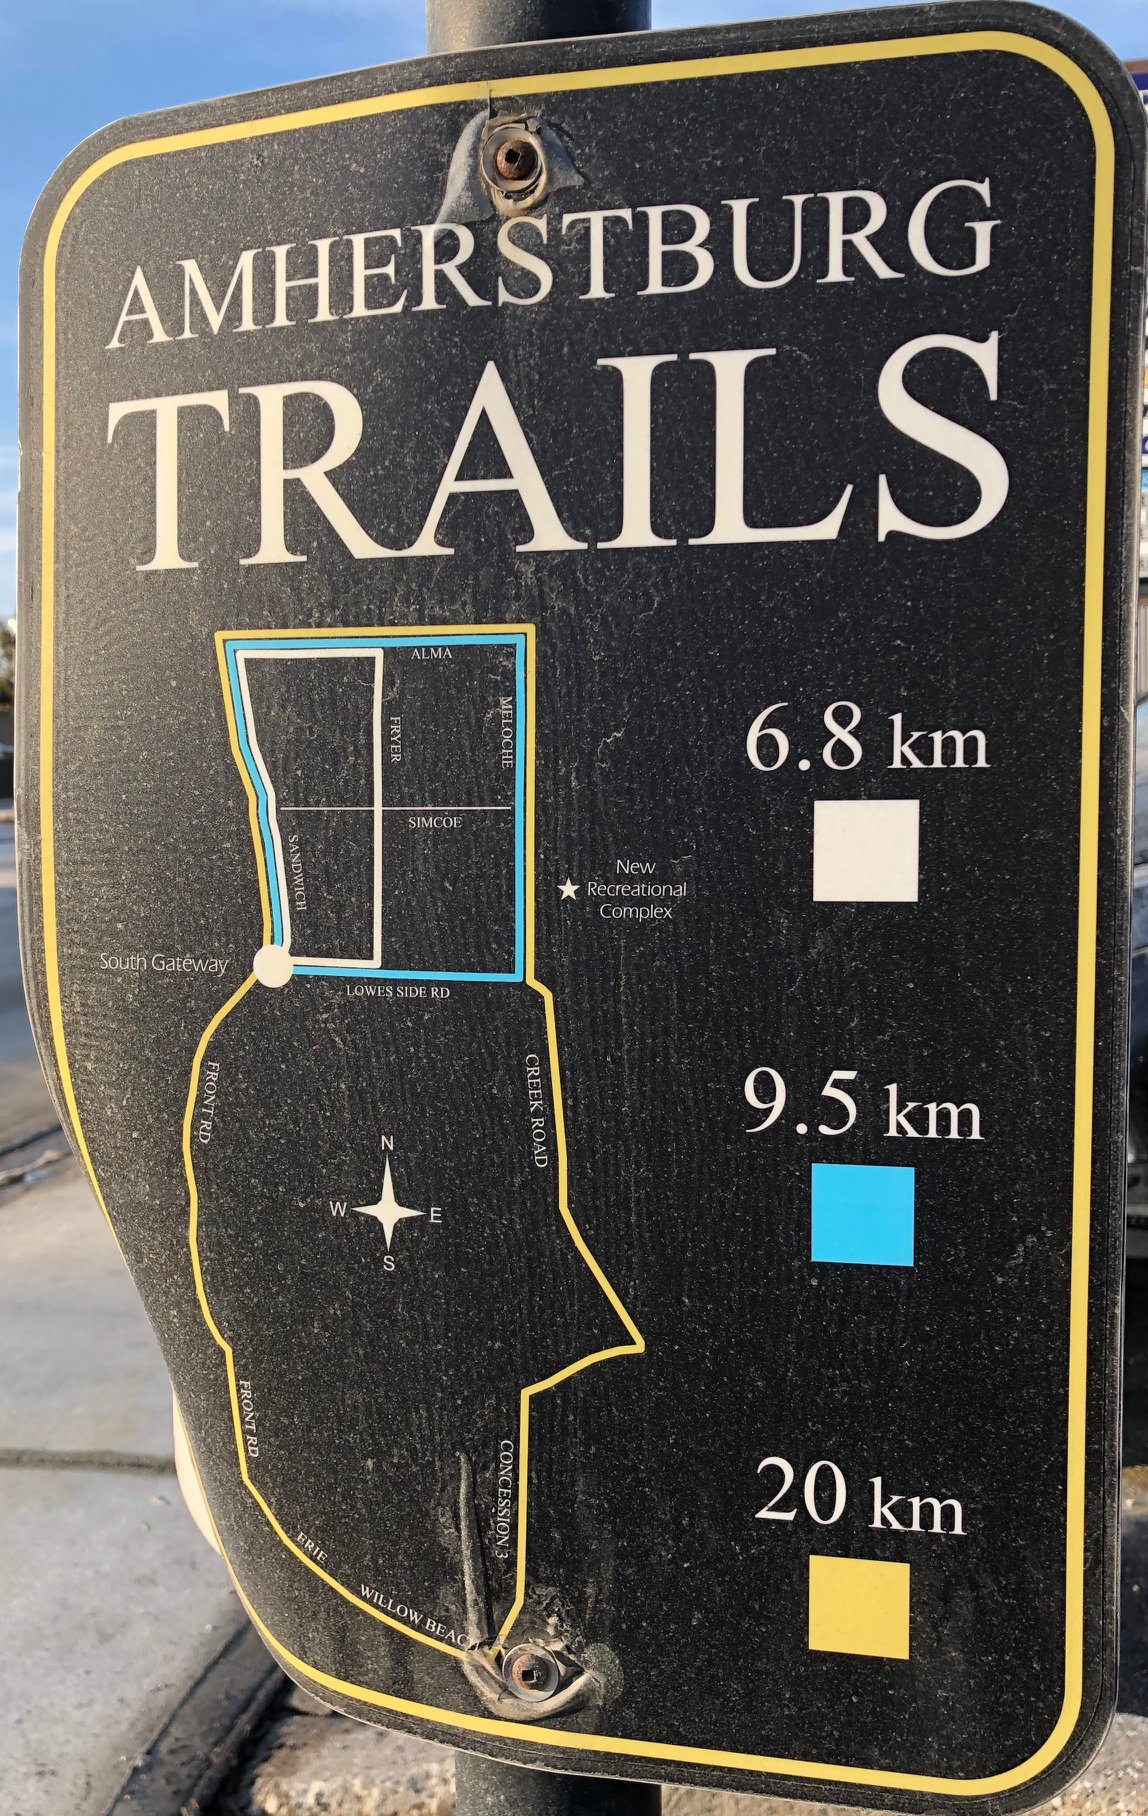 Amherstburg Trail Sign